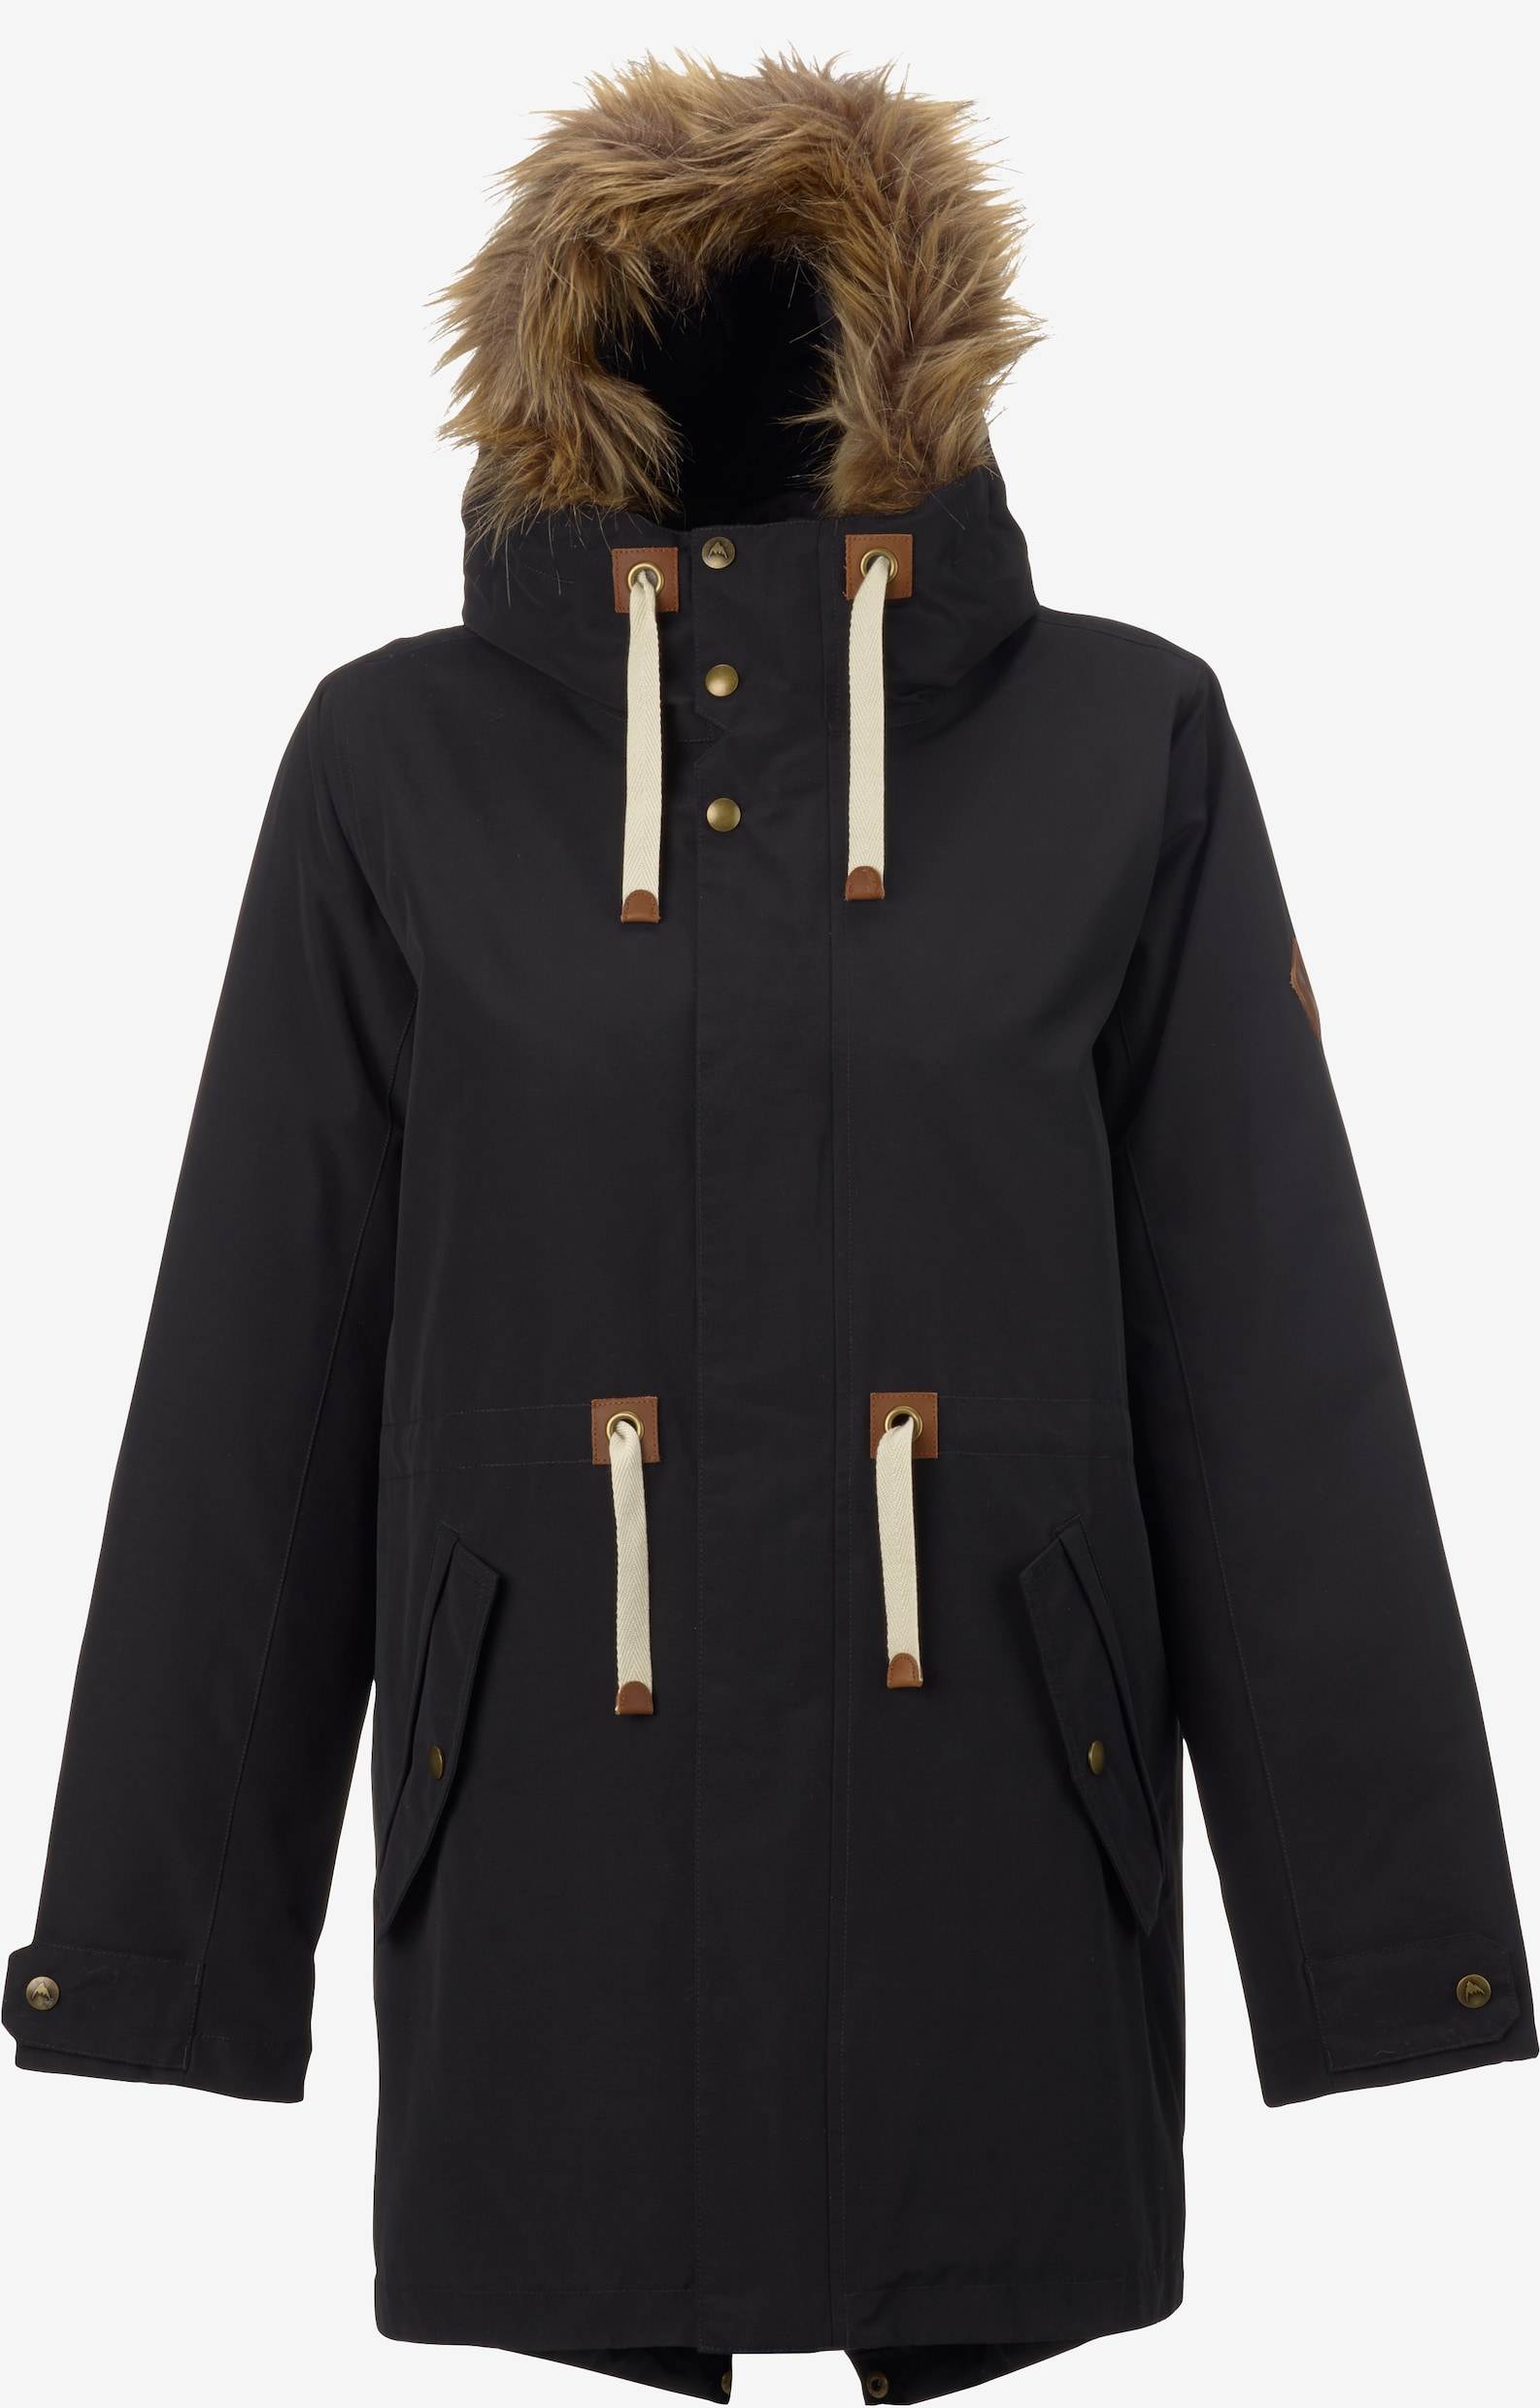 Burton Saxton Parka Jacket shown in True Black